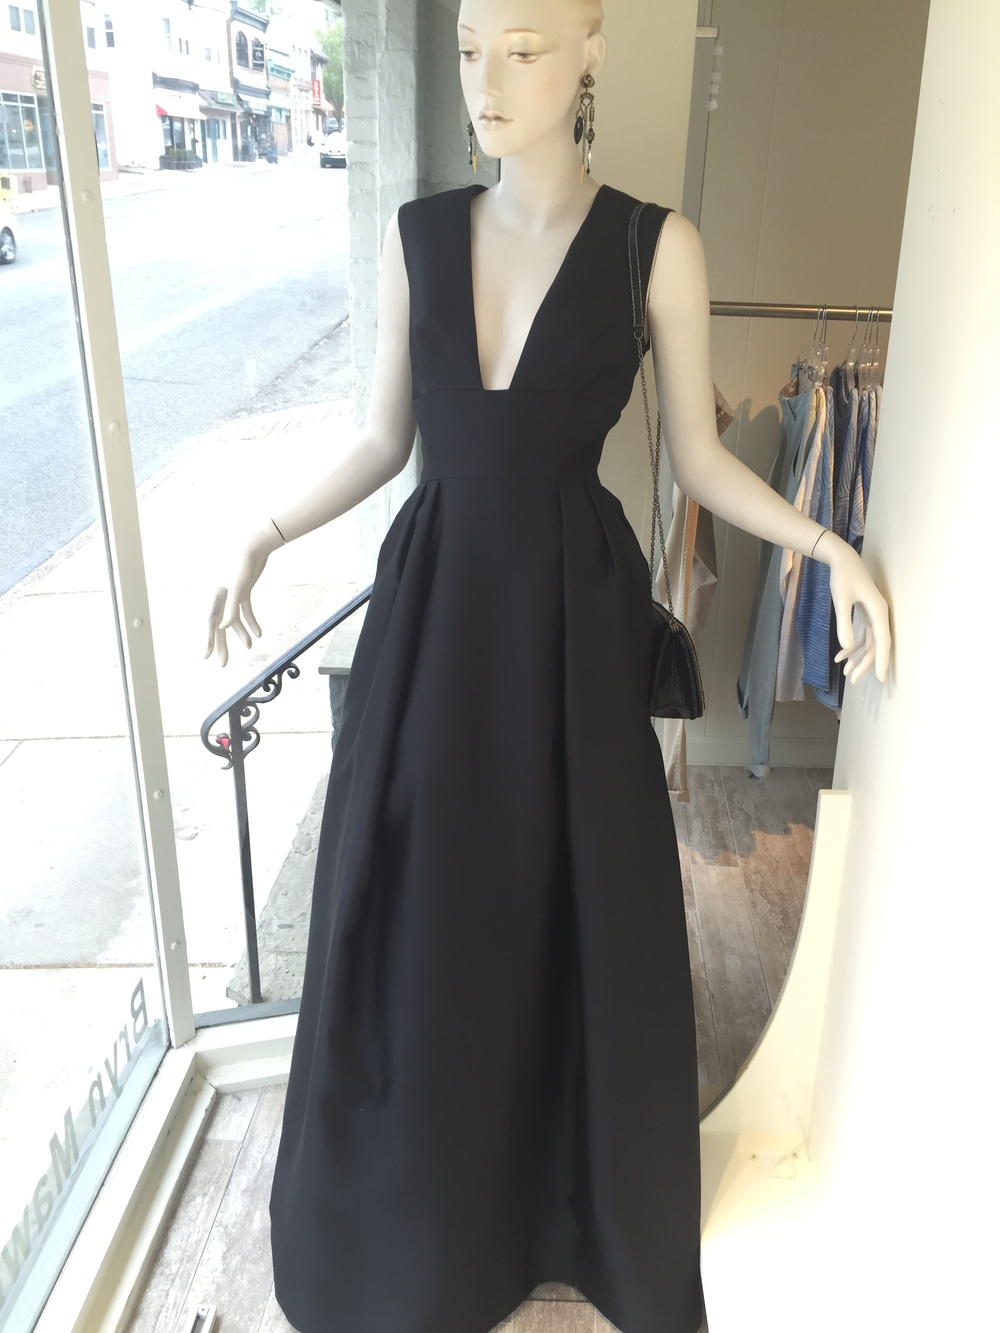 This deep v-neck, full skirt gown in a silk and wool fabric can be customized to suit your event needs. We can order this piece in colors and can also fill in the neckline with a lace detail if it is lower than your preference.